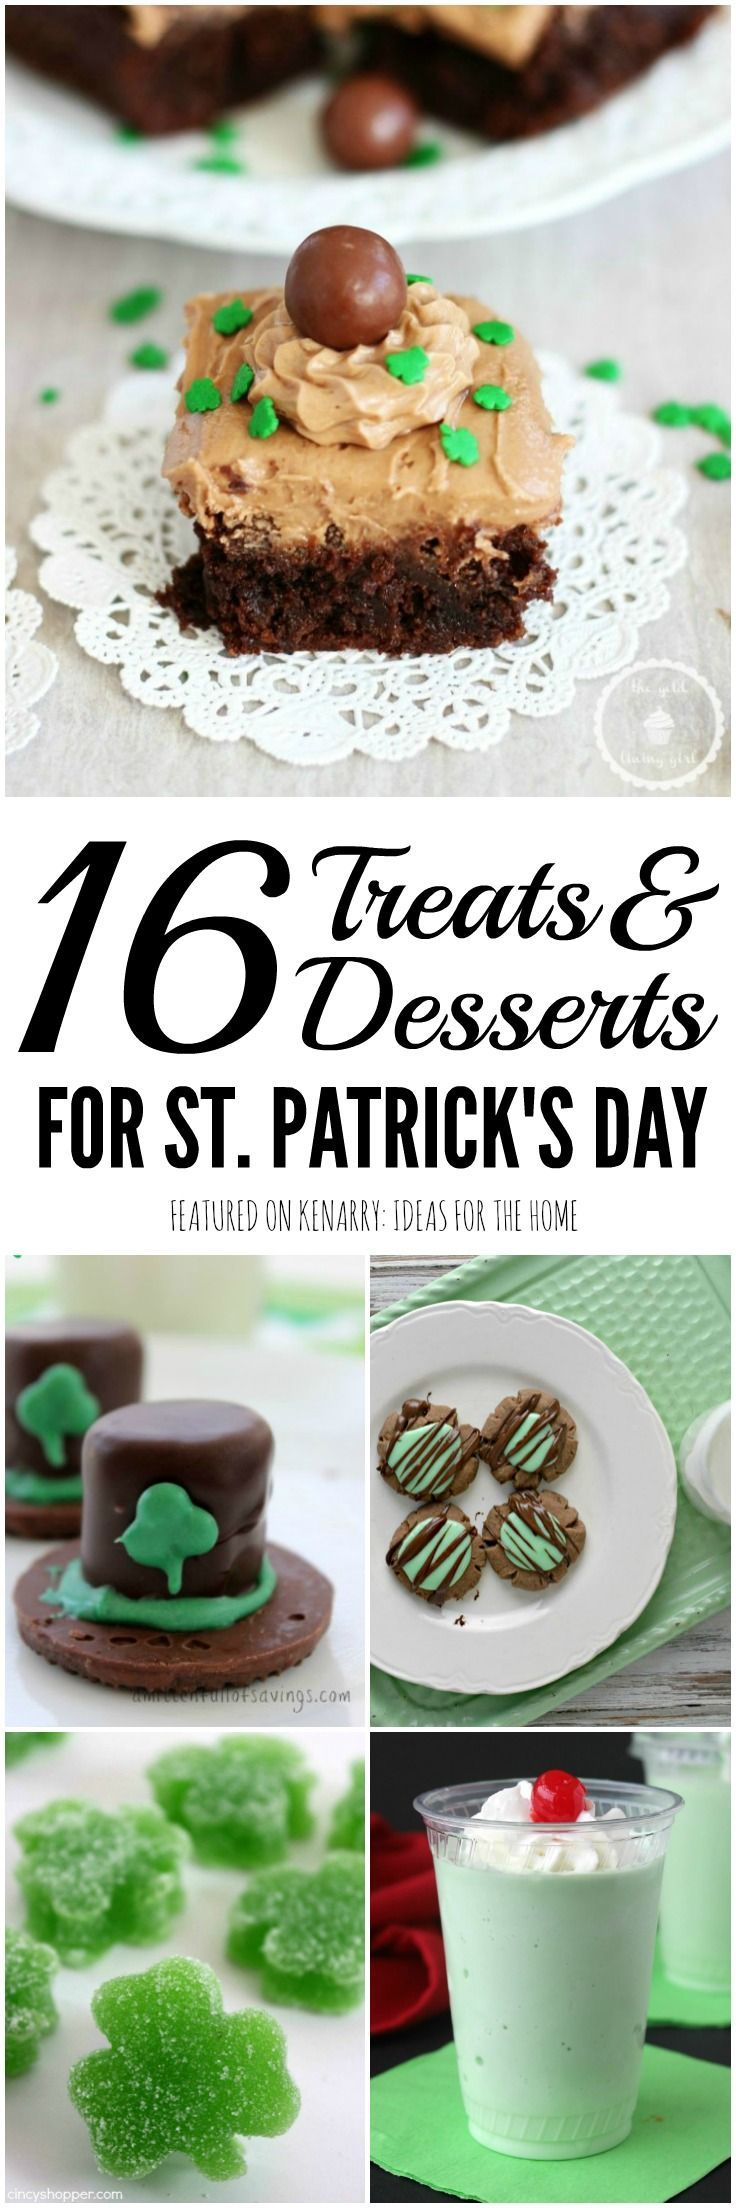 Celebrate on March 17 with any of these 16 St. Patrick's Day Treats and Party Ideas including delicious desserts, drinks, snacks and other recipes.